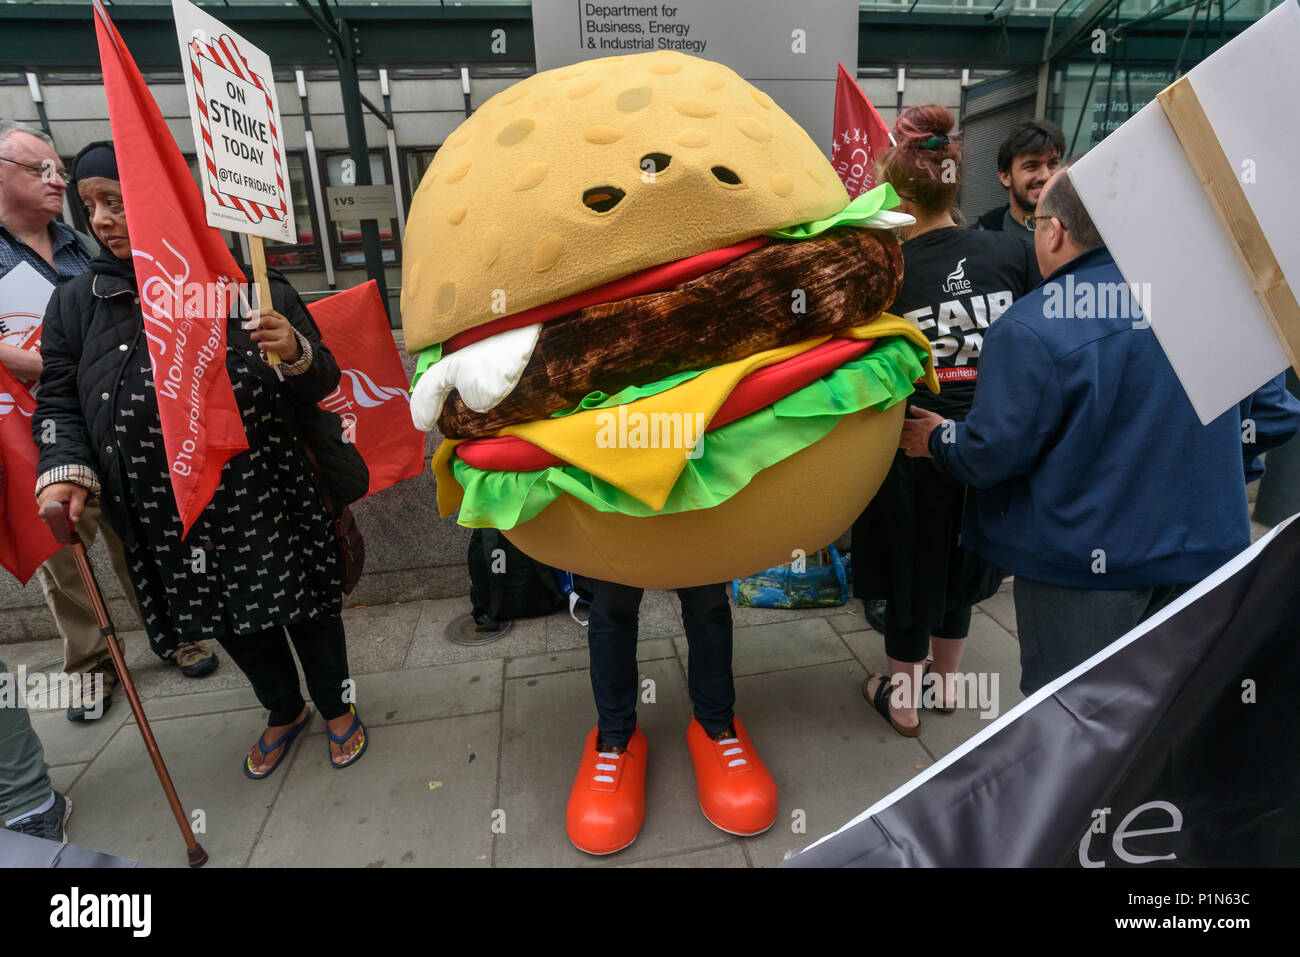 London, UK. 12th June 2018. Strikers from TGI Fridays, others from the Unite  Restaurant, Catering and Bar Workers Branch and Unite Community came to the Department of Business, Energy, Innovation and Skills with a man dressed as a giant burger to deliver a letter to business secretary Greg Clark calling on him to put an end to employers taking a part of the credit card tips that customers leave. Two years ago his predecessor Sajid Javid promised to tackle the problem but nothing has been done. Credit: Peter Marshall/Alamy Live News - Stock Image